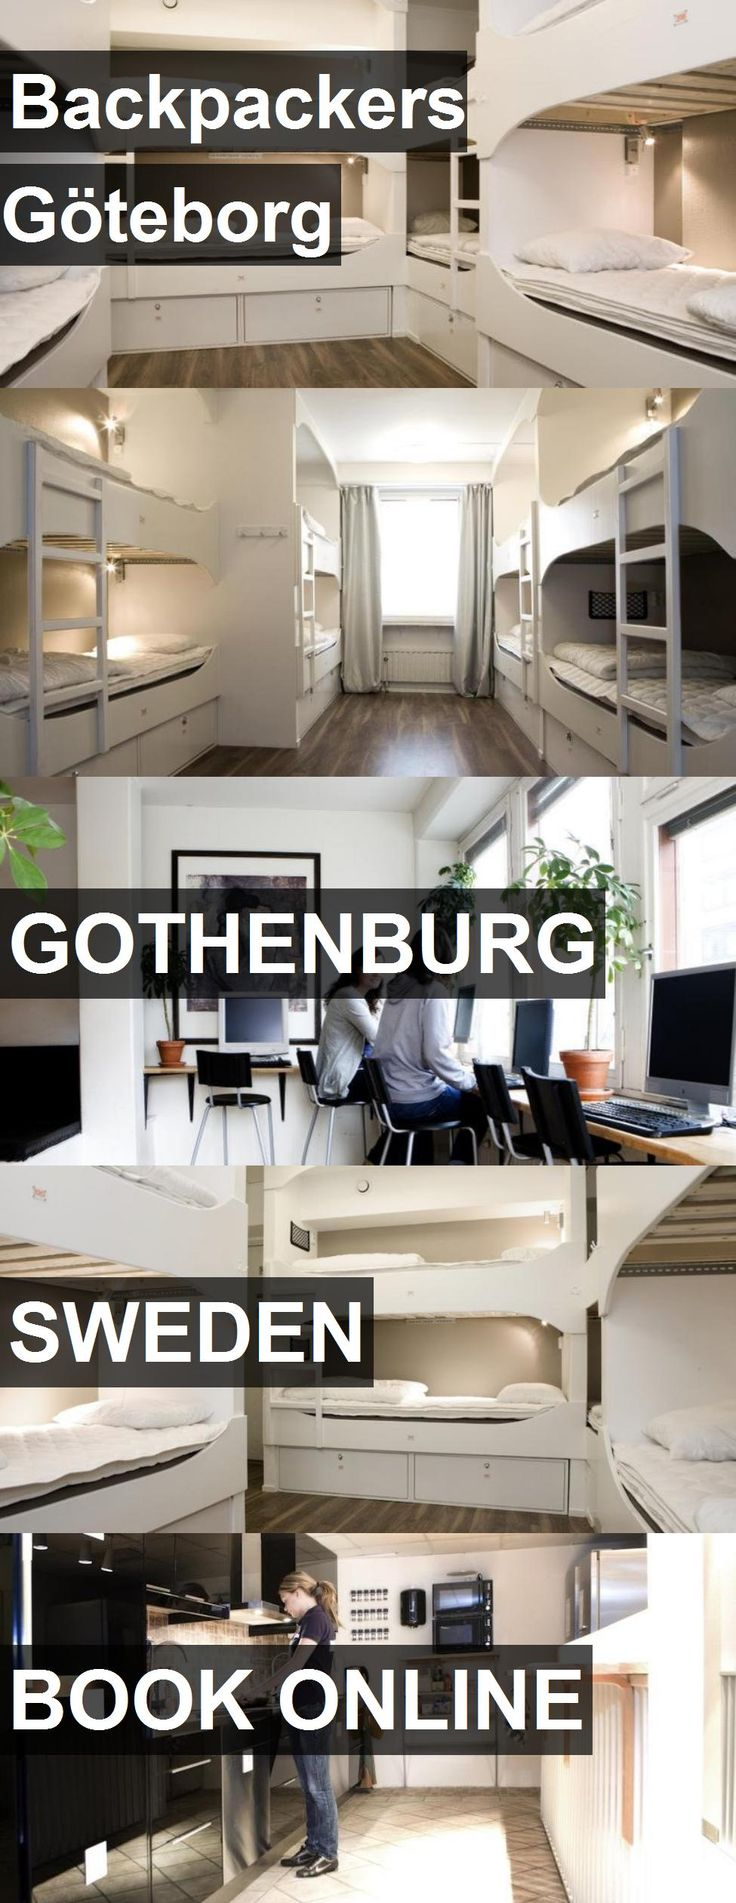 Hotel Backpackers Göteborg in Gothenburg, Sweden. For more information, photos, reviews and best prices please follow the link. #Sweden #Gothenburg #hotel #travel #vacation